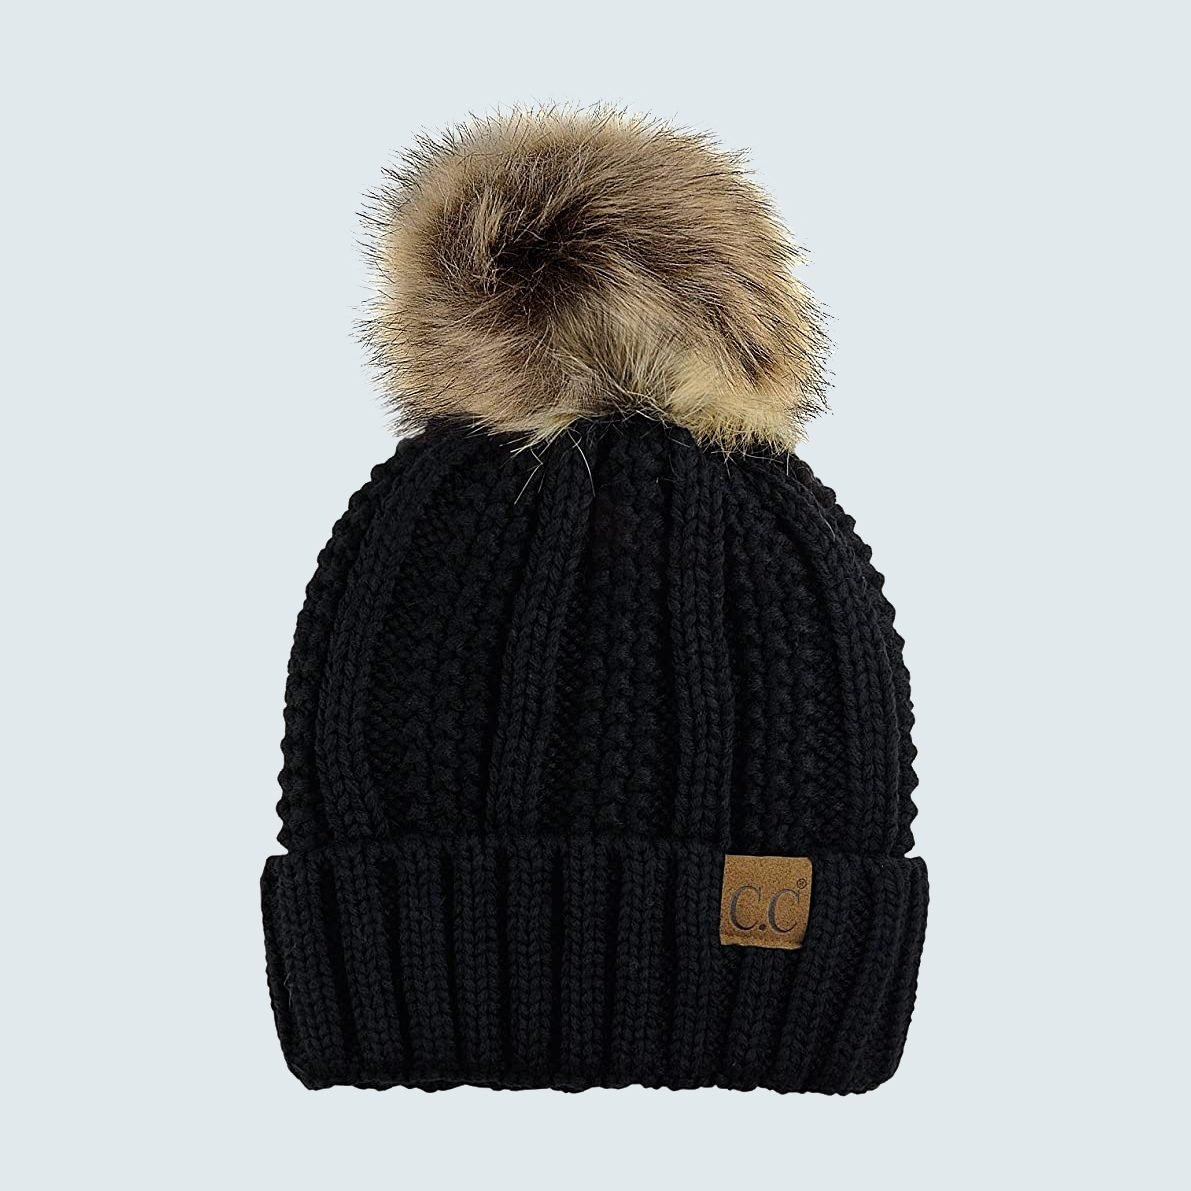 C.C. Thick Cable Knit Faux Fuzzy Fur Pom Beanie